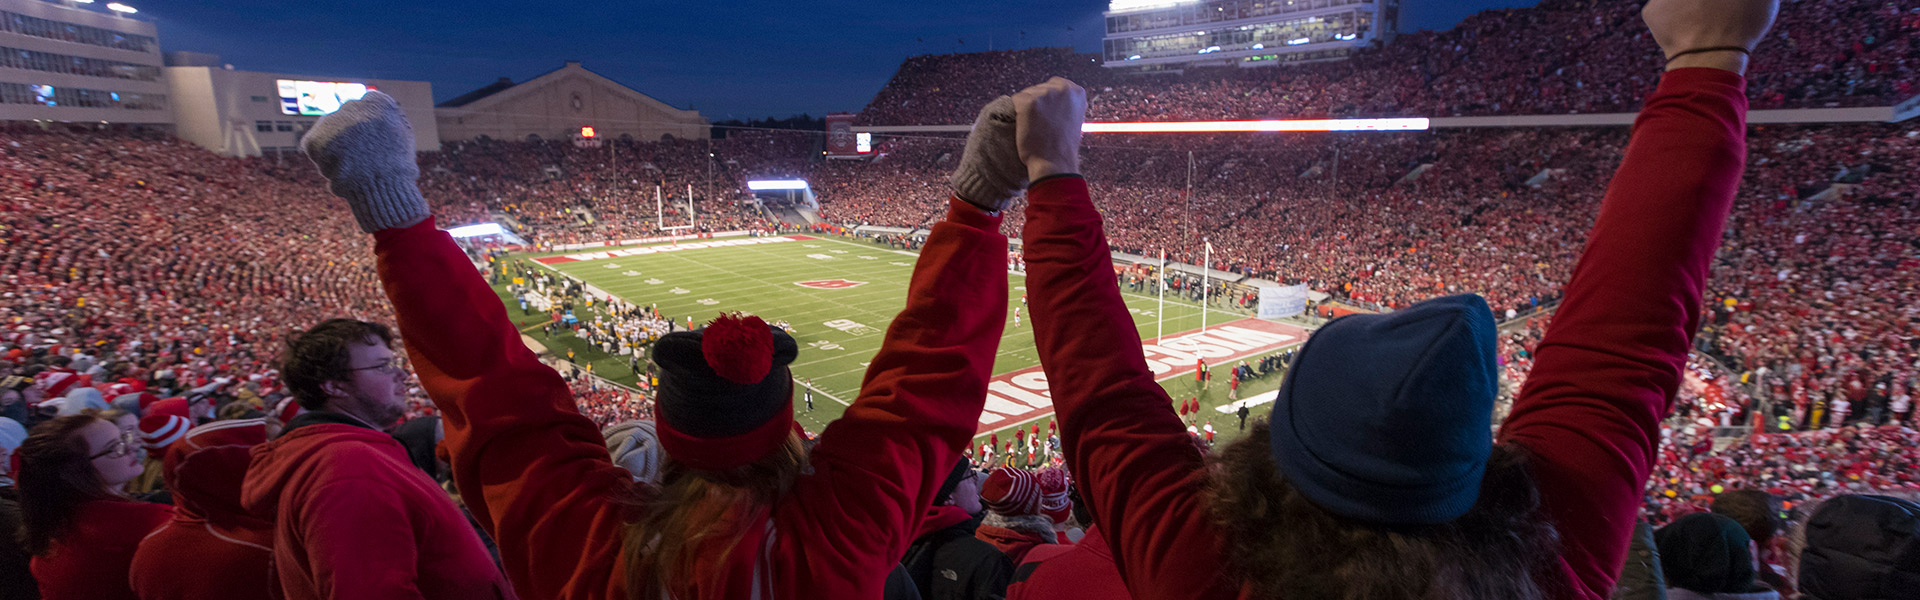 sports physical form 2019 wisconsin  12 Football Season Ticket Information | Wisconsin Badgers